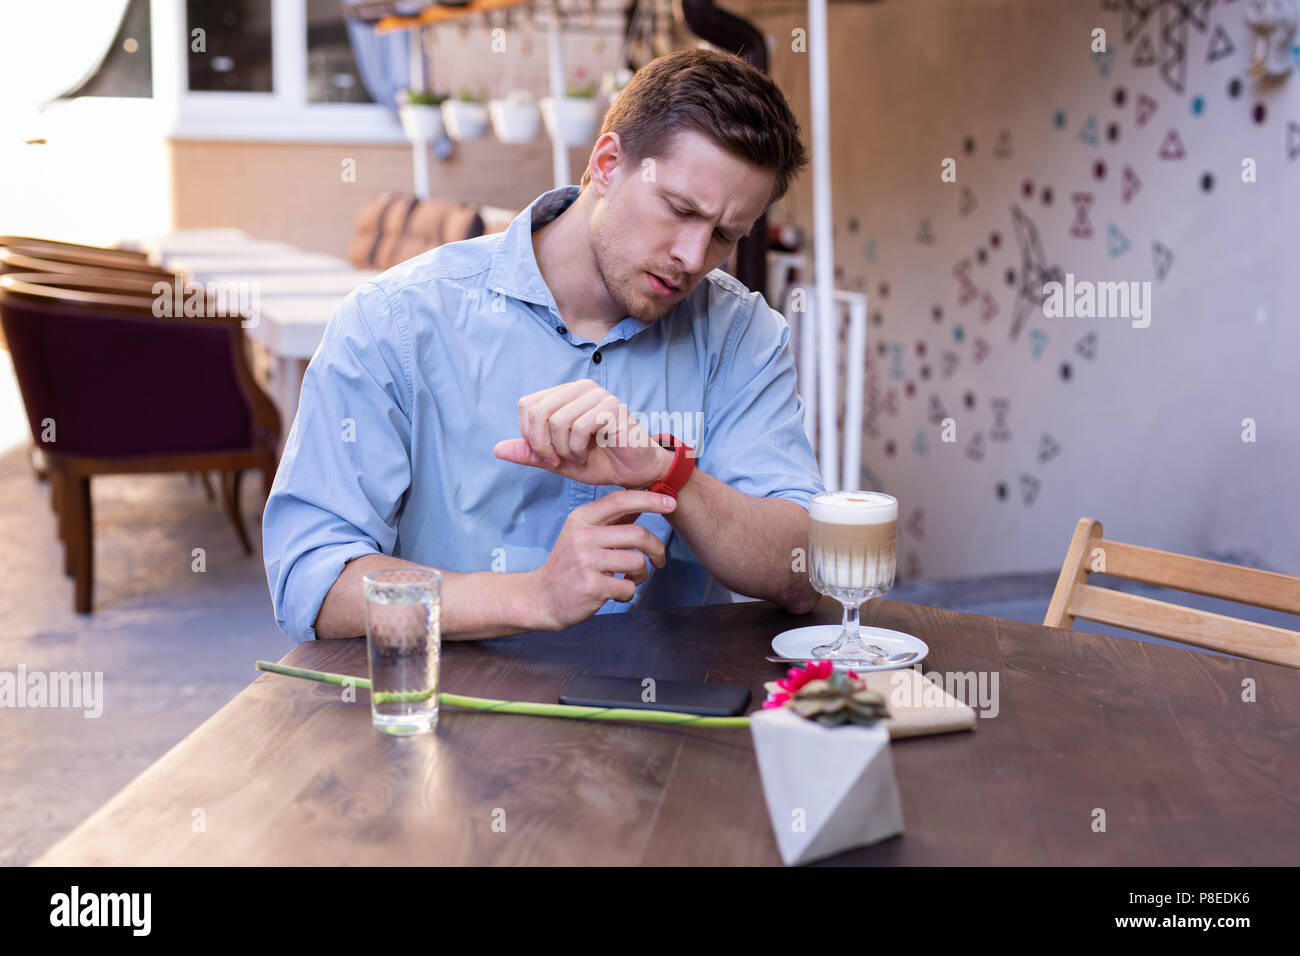 Handsome man looking at his nice red wrist watch - Stock Image